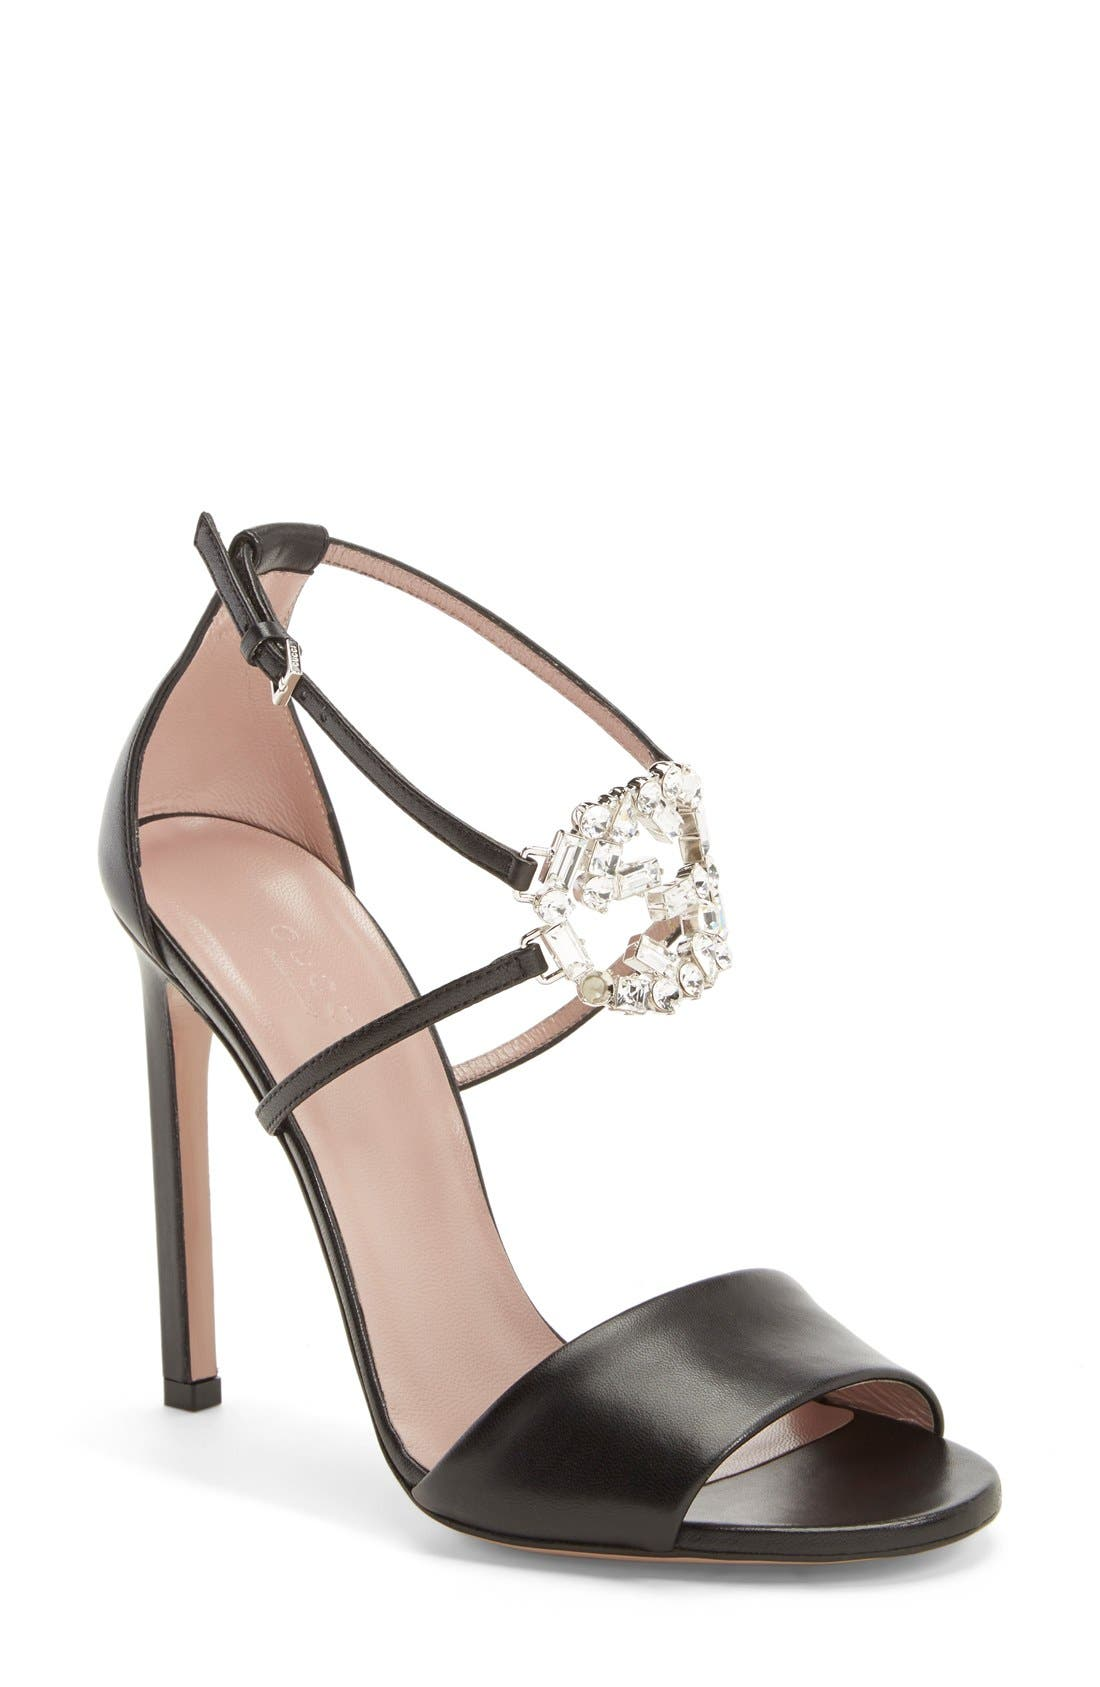 Alternate Image 1 Selected - Gucci 'GG' Logo Ankle Strap Sandal (Women)